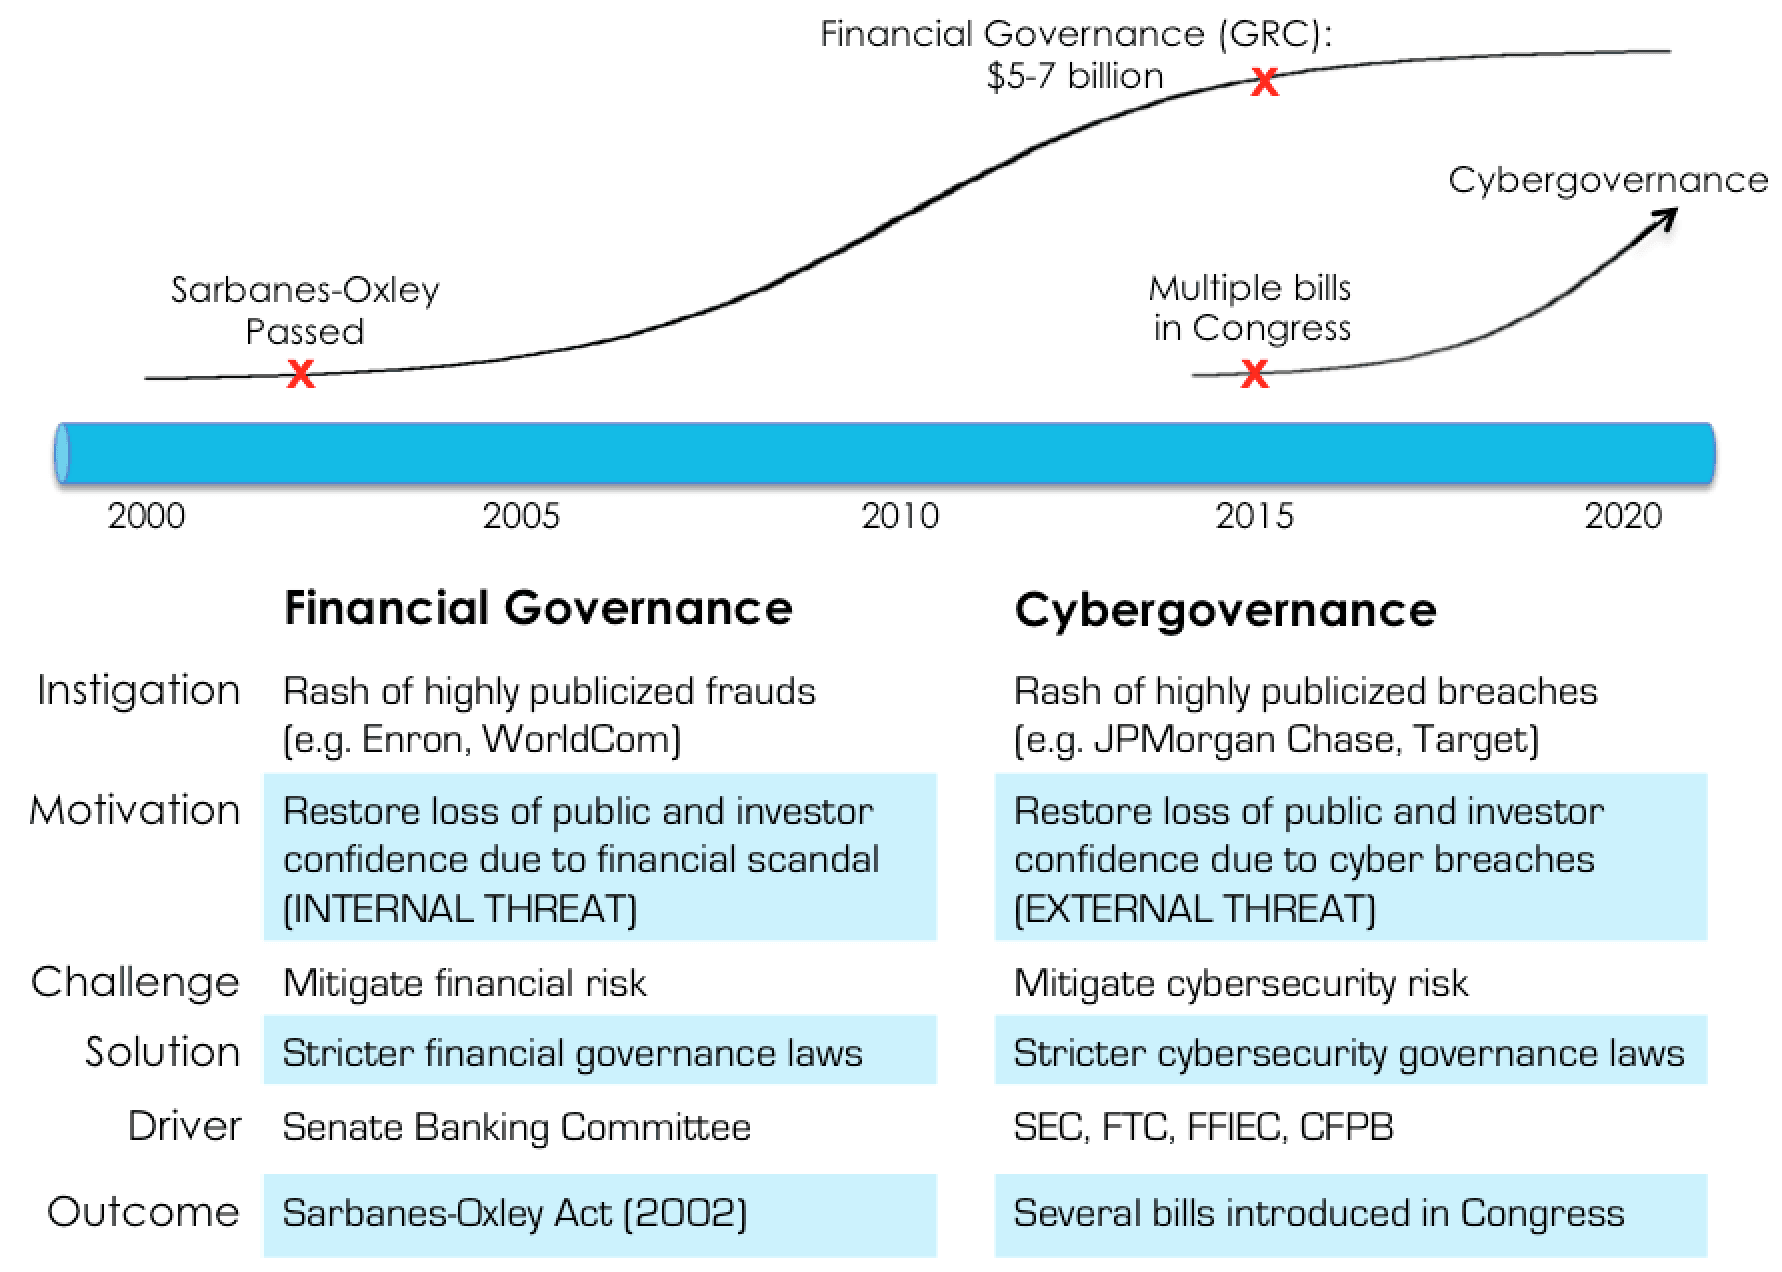 Comparison between the fields of cybergovernance and financial governance